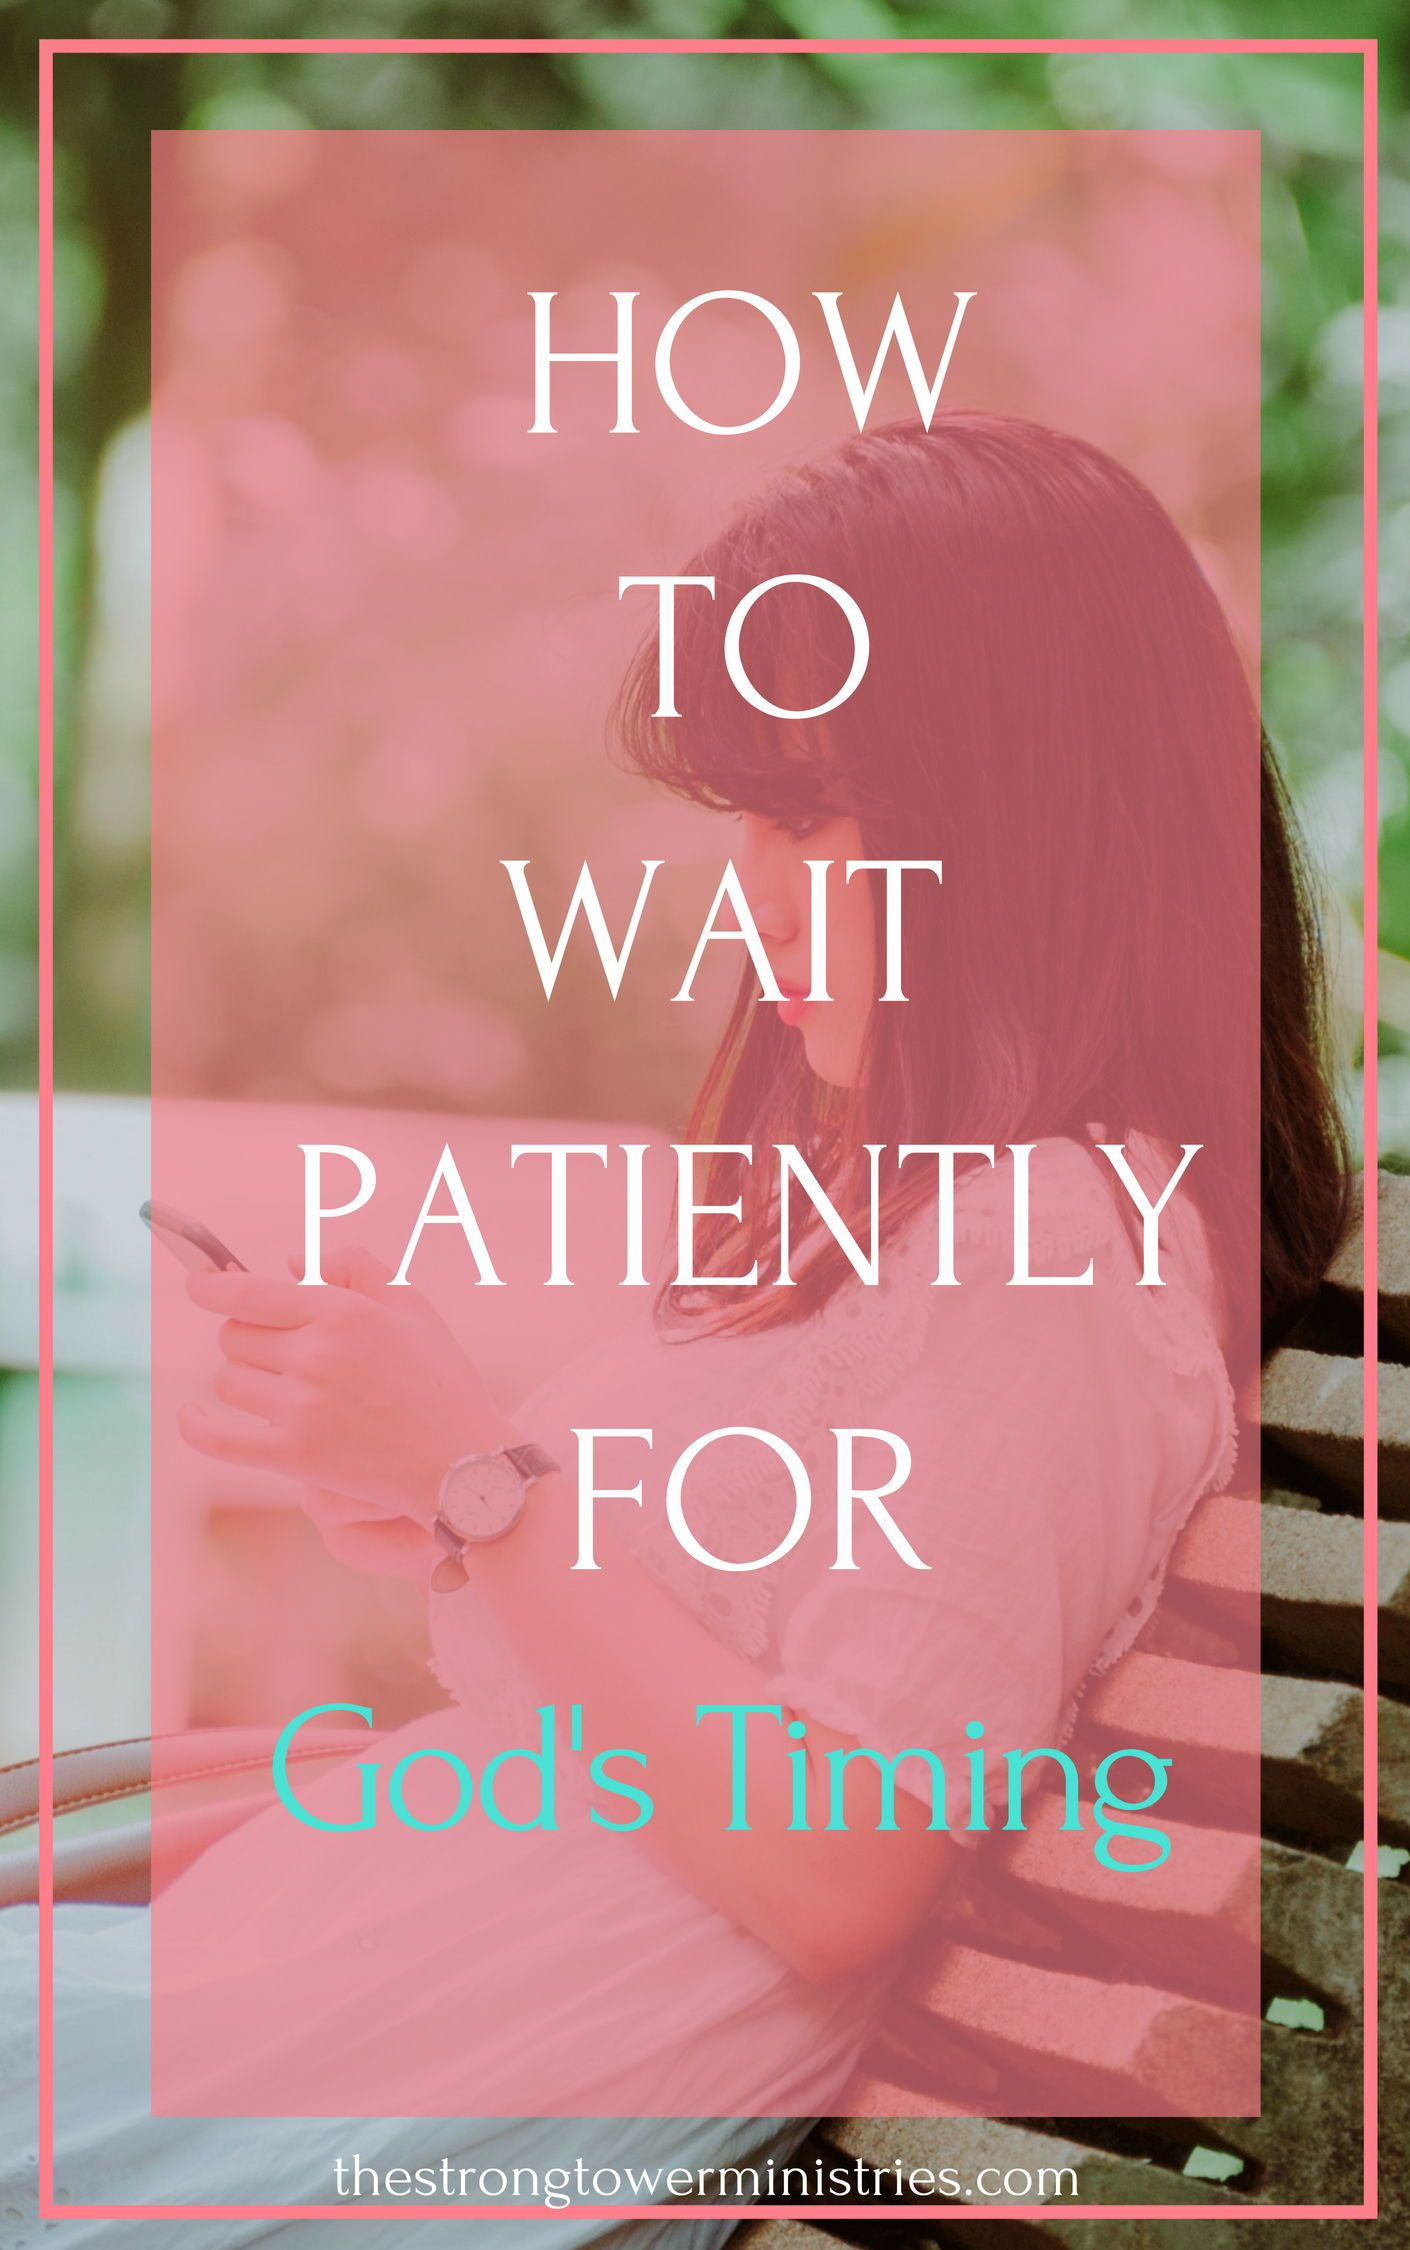 christian dating advice patience